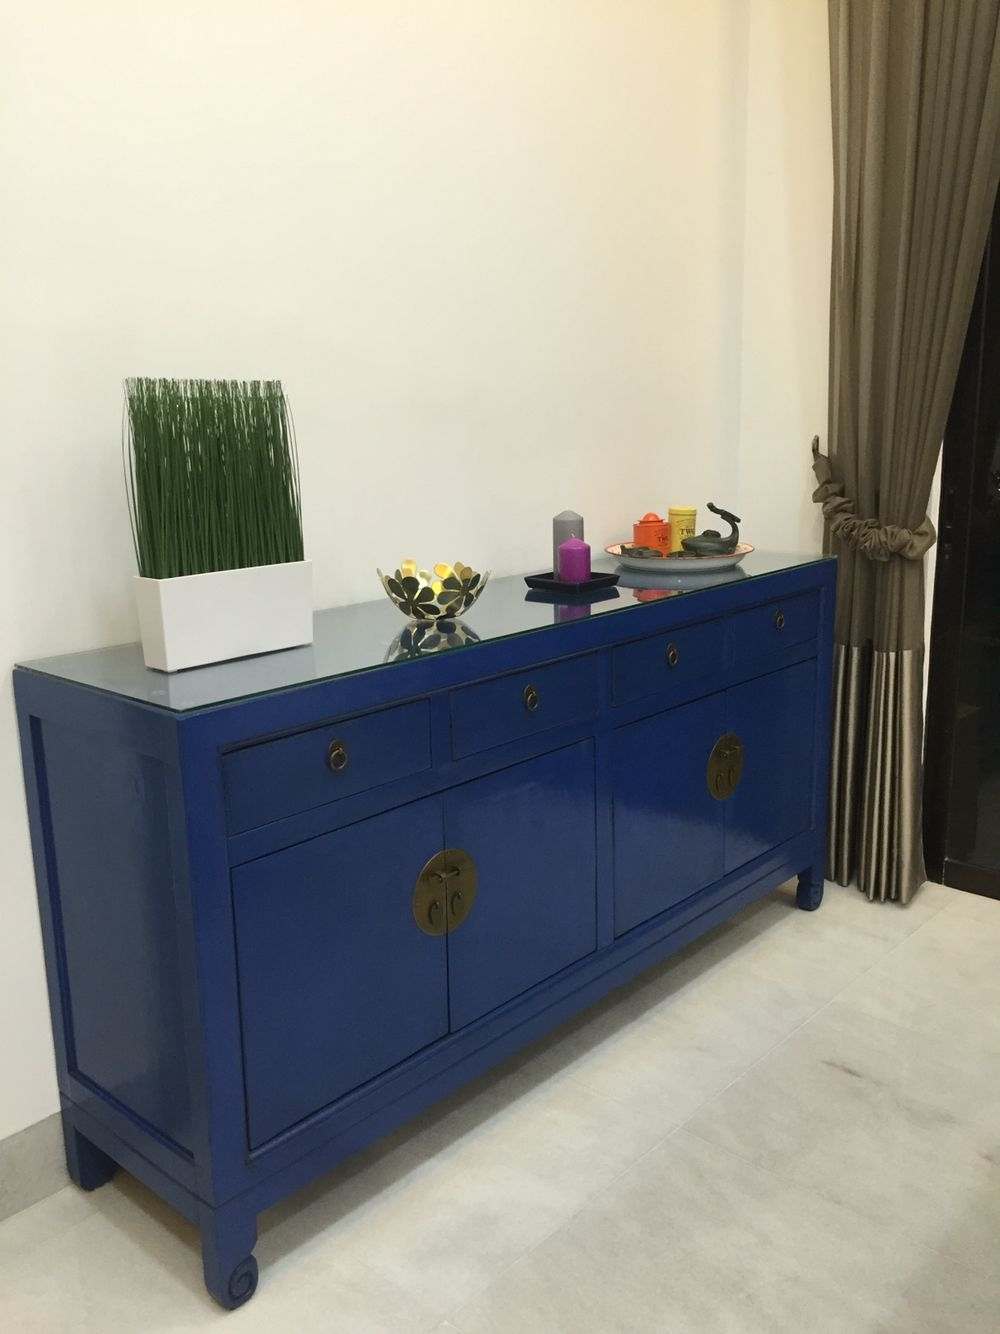 Cobalt/ Royal Blue Sideboard With Antique Chinese Elements For My In Current Blue Stone Light Rustic Black Sideboards (#13 of 20)